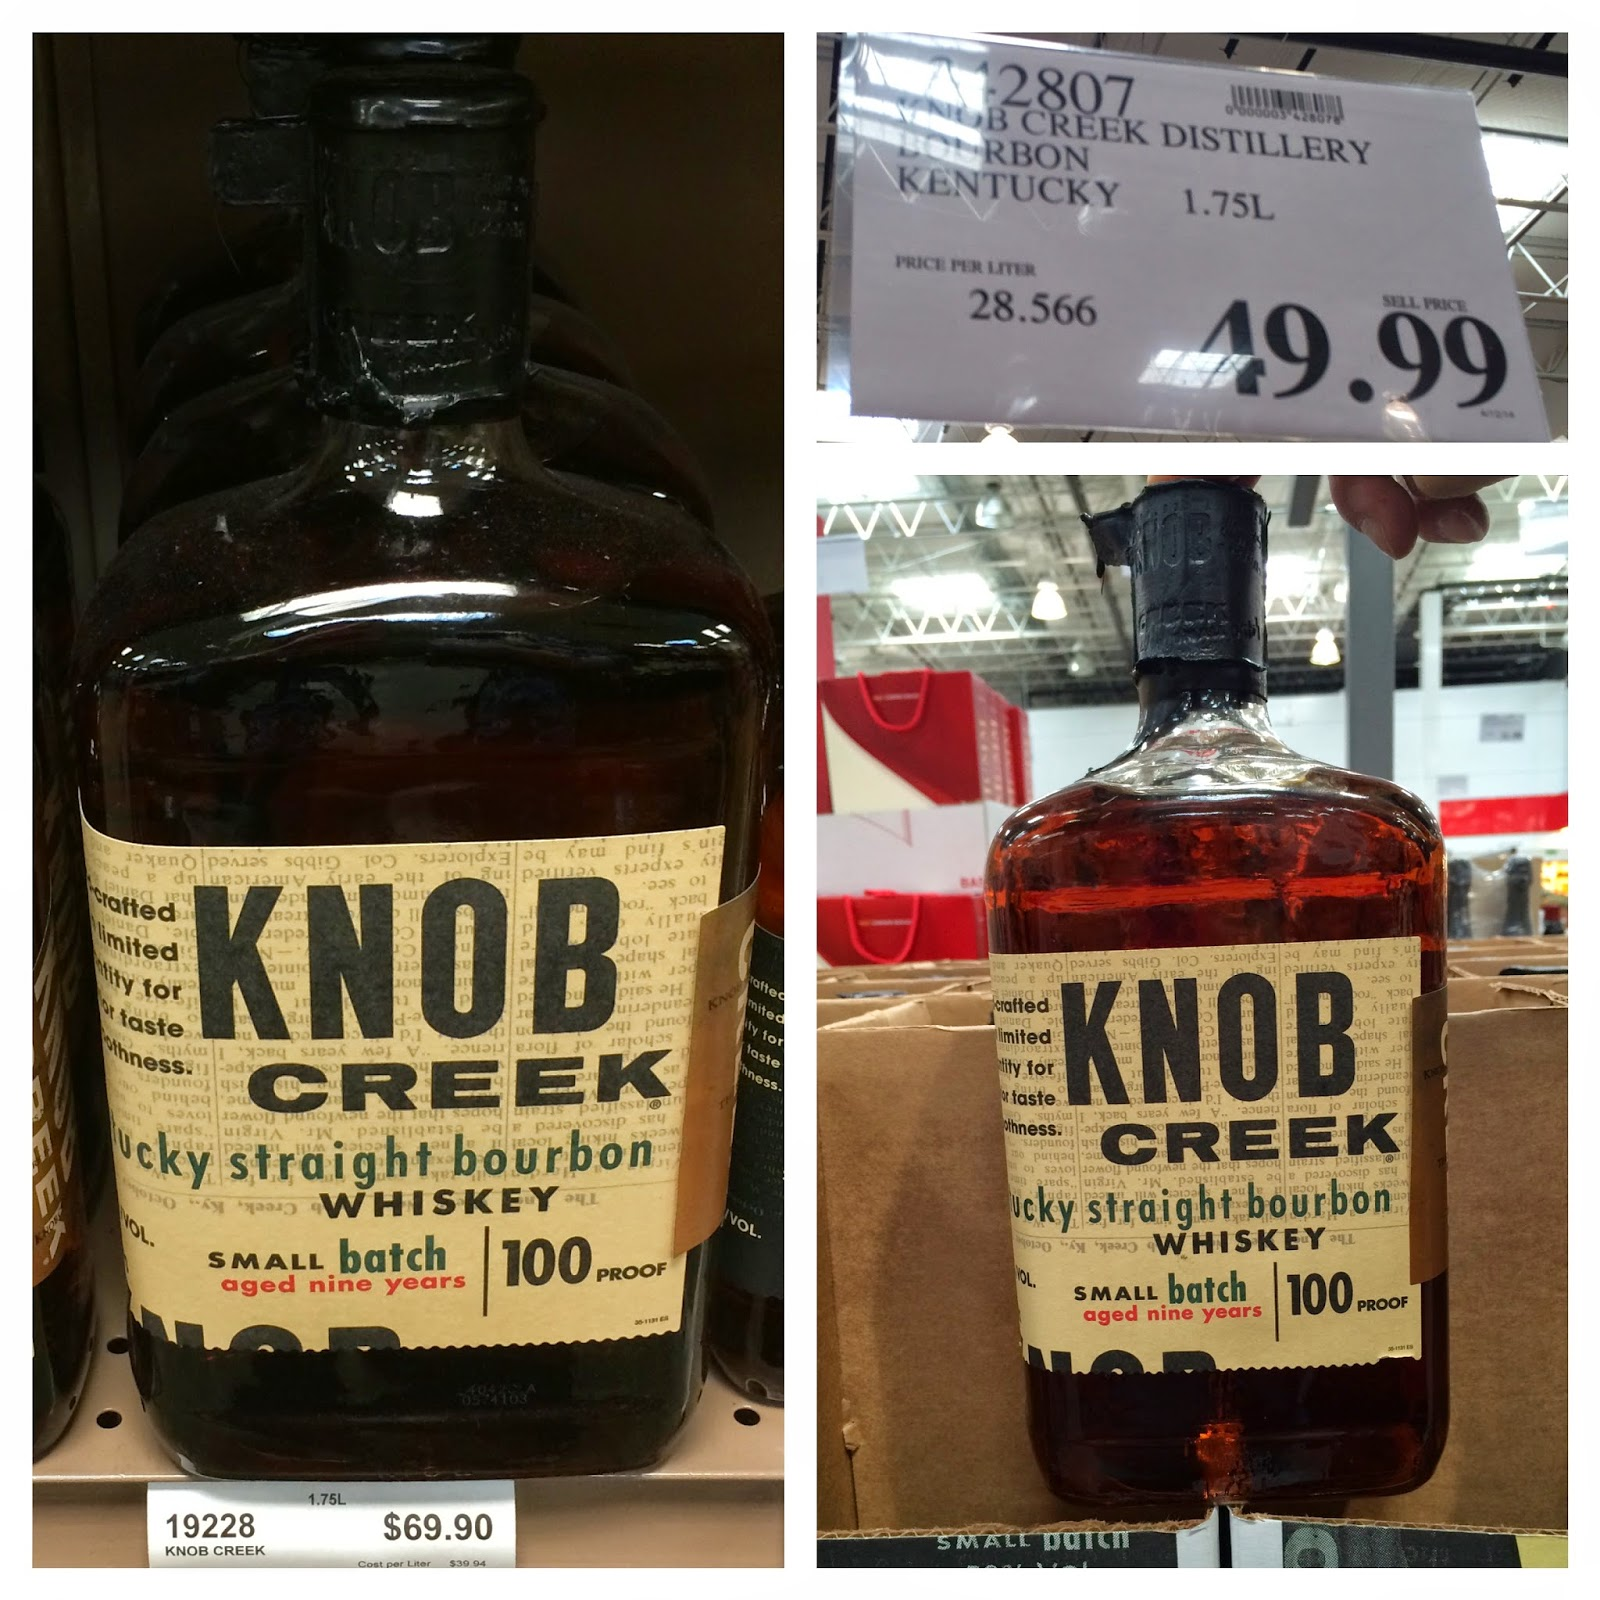 the costco connoisseur buy your booze at costco and save kahlua coffee liqueur a 1 75l bottle retails for 47 95 while costco sells the same bottle for 35 89 the costco price is 25% less than the retail price